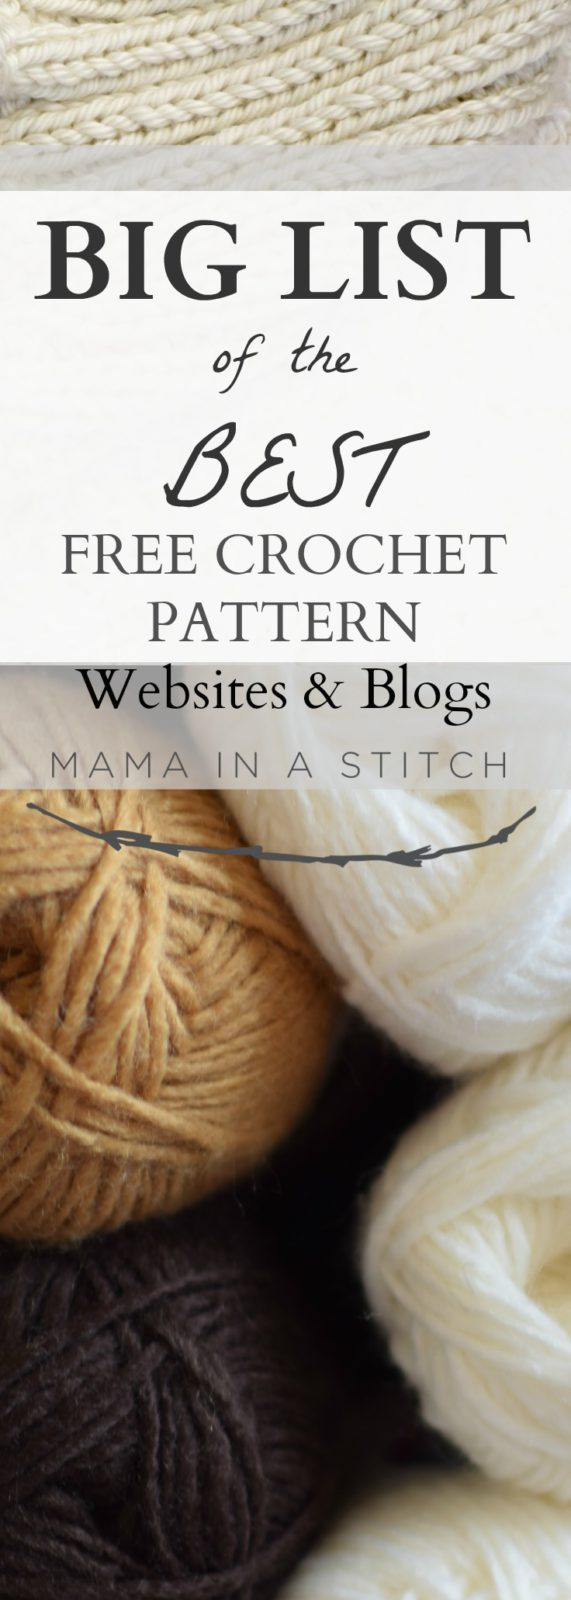 BIG List of Free Crochet Pattern Blogs & Websites ? Mama ...